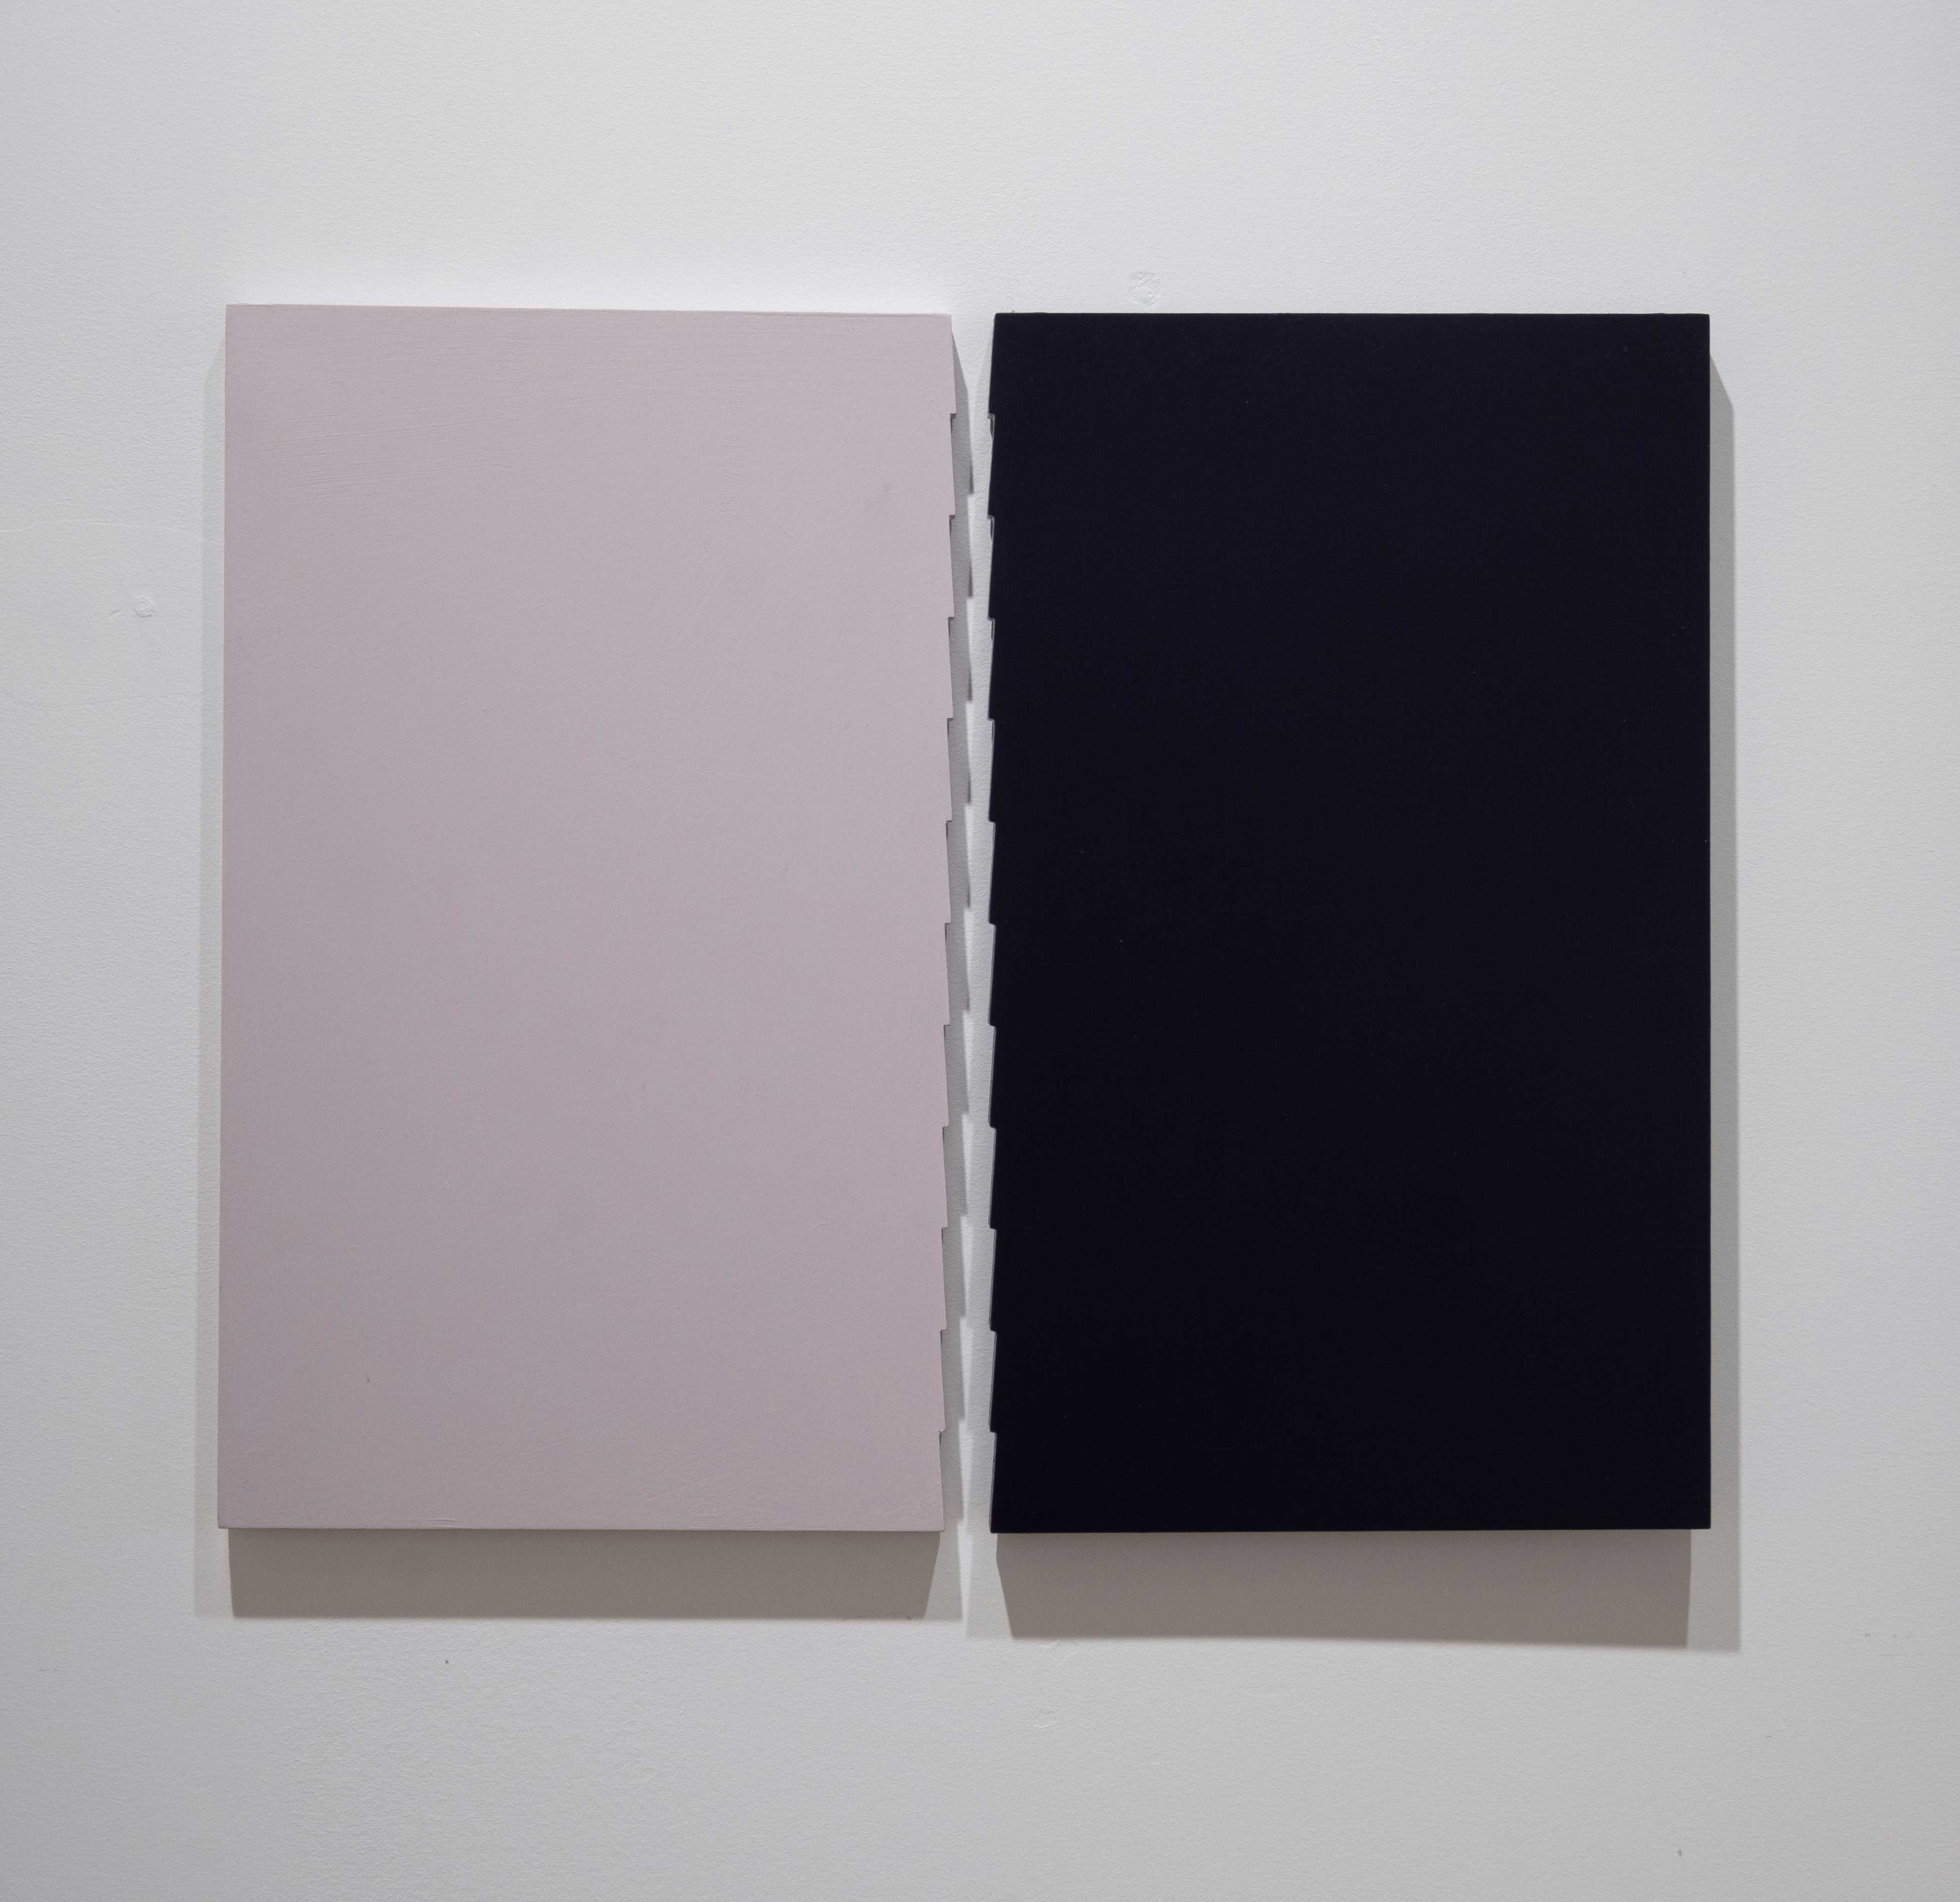 Tess Jaray 2016 Oil on board 14.5 x 18 inches (36.8 x 45.7 cm) 2019 Marc Straus Gallery